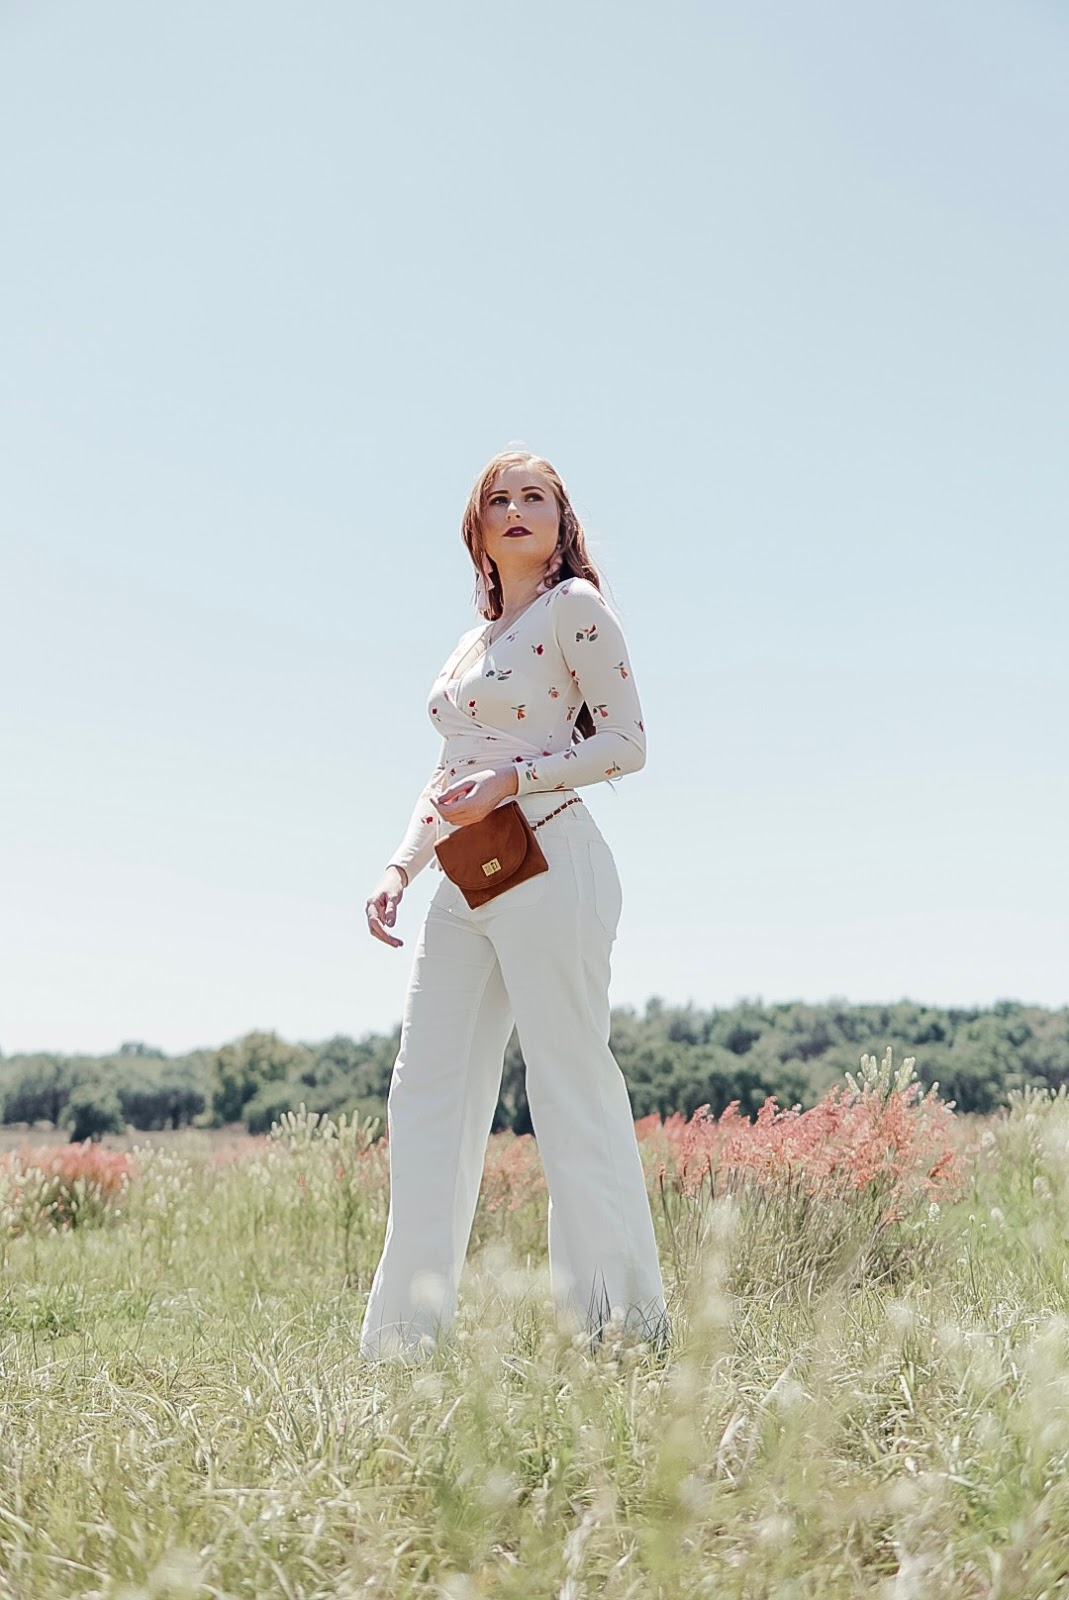 tampa blogger amanda burrows from the blog affordable by amanda is wearing a floral wrap top and white corduroy pants in the wildflower fields in dade city, florida.